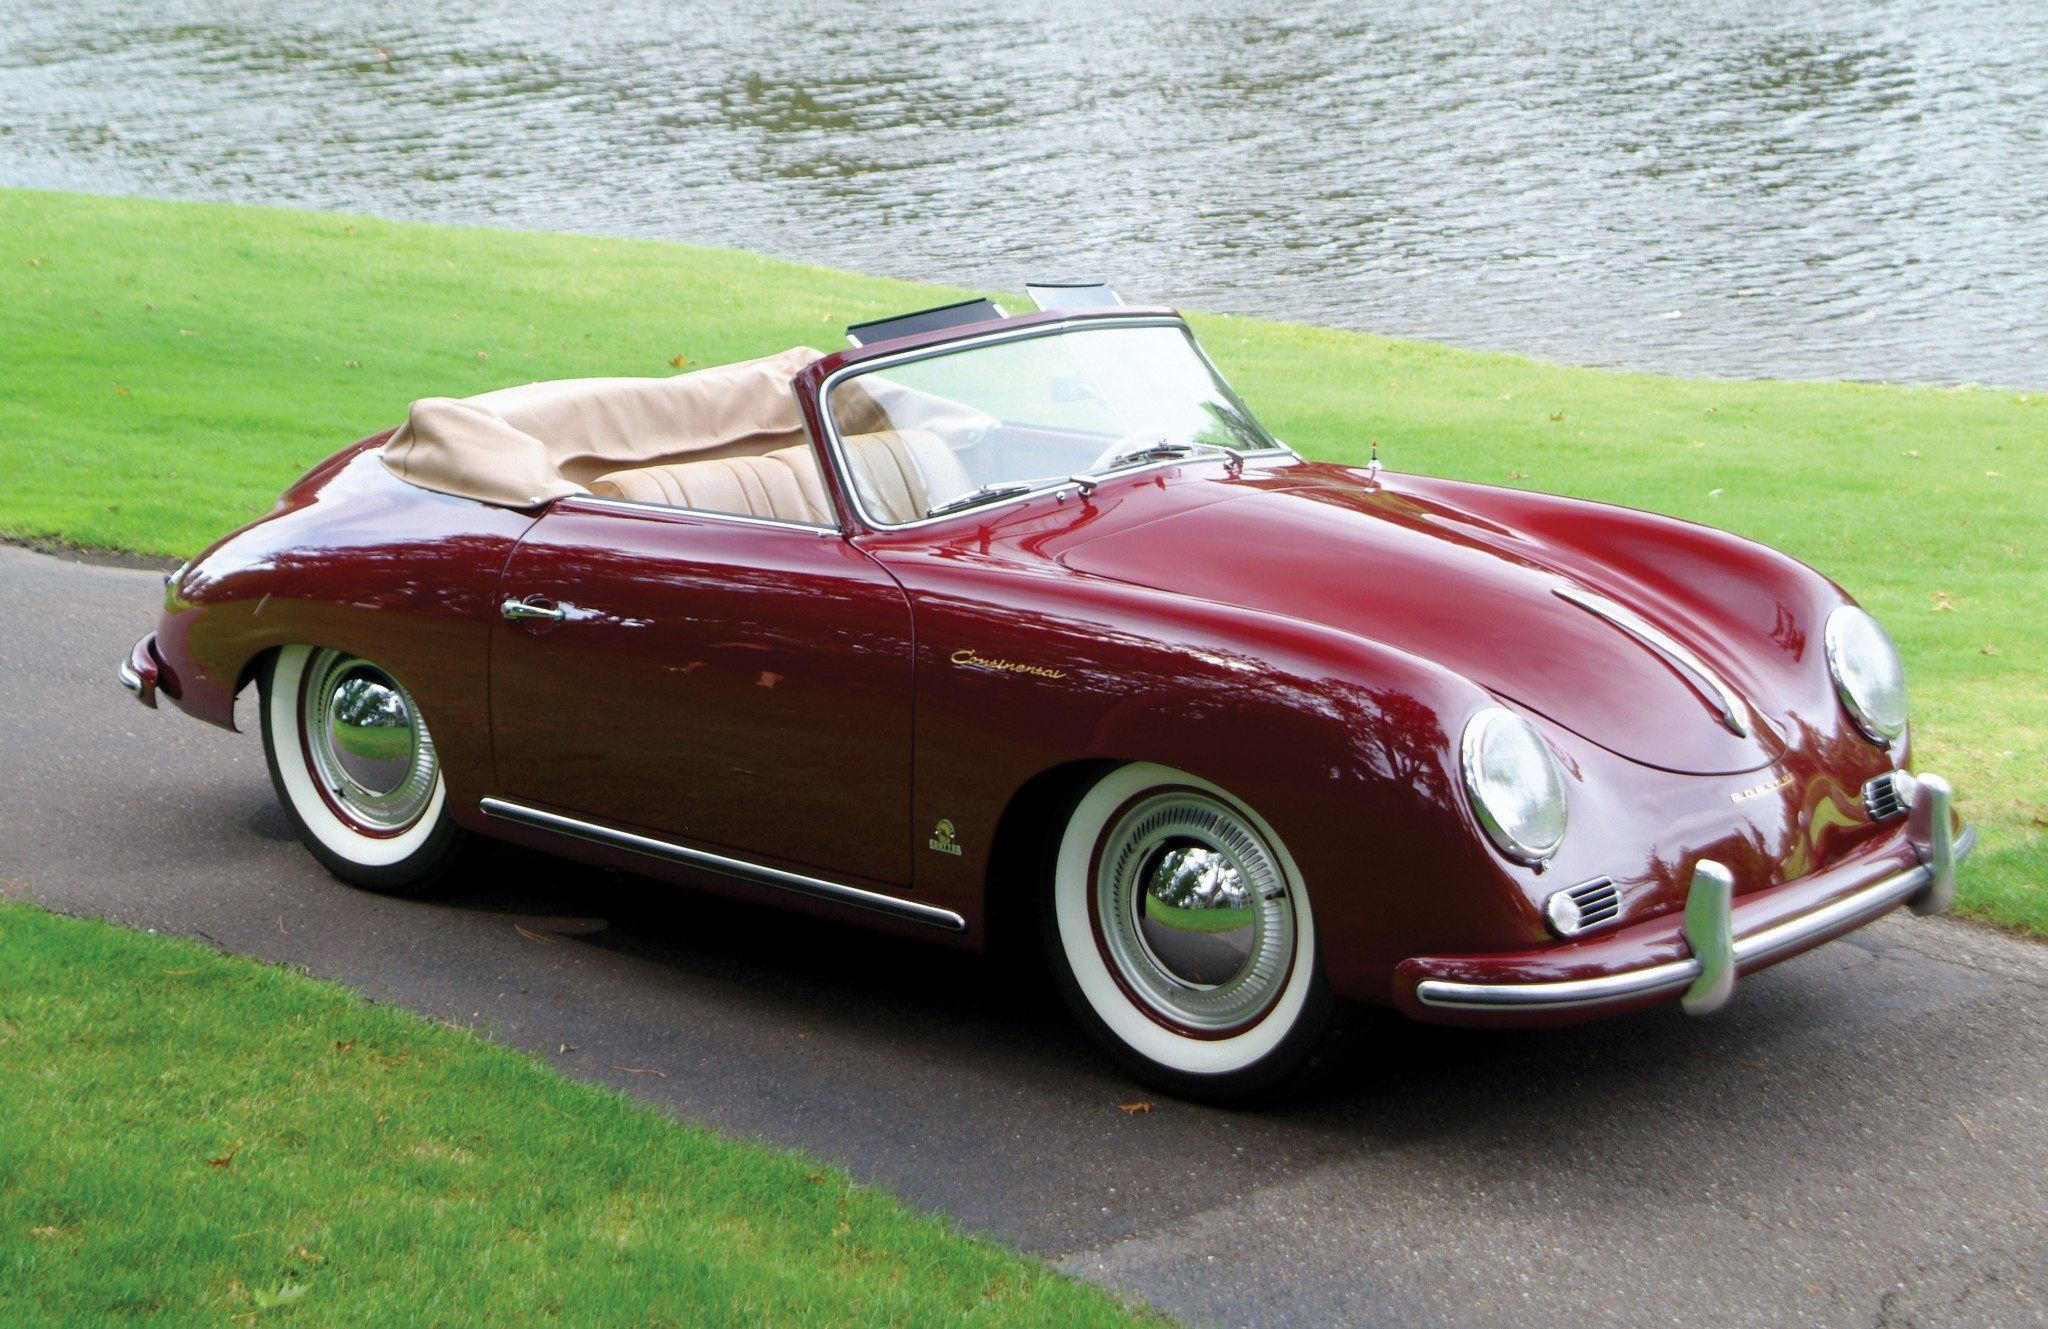 1955 Porsche 356 Continental – The Grand Dame of